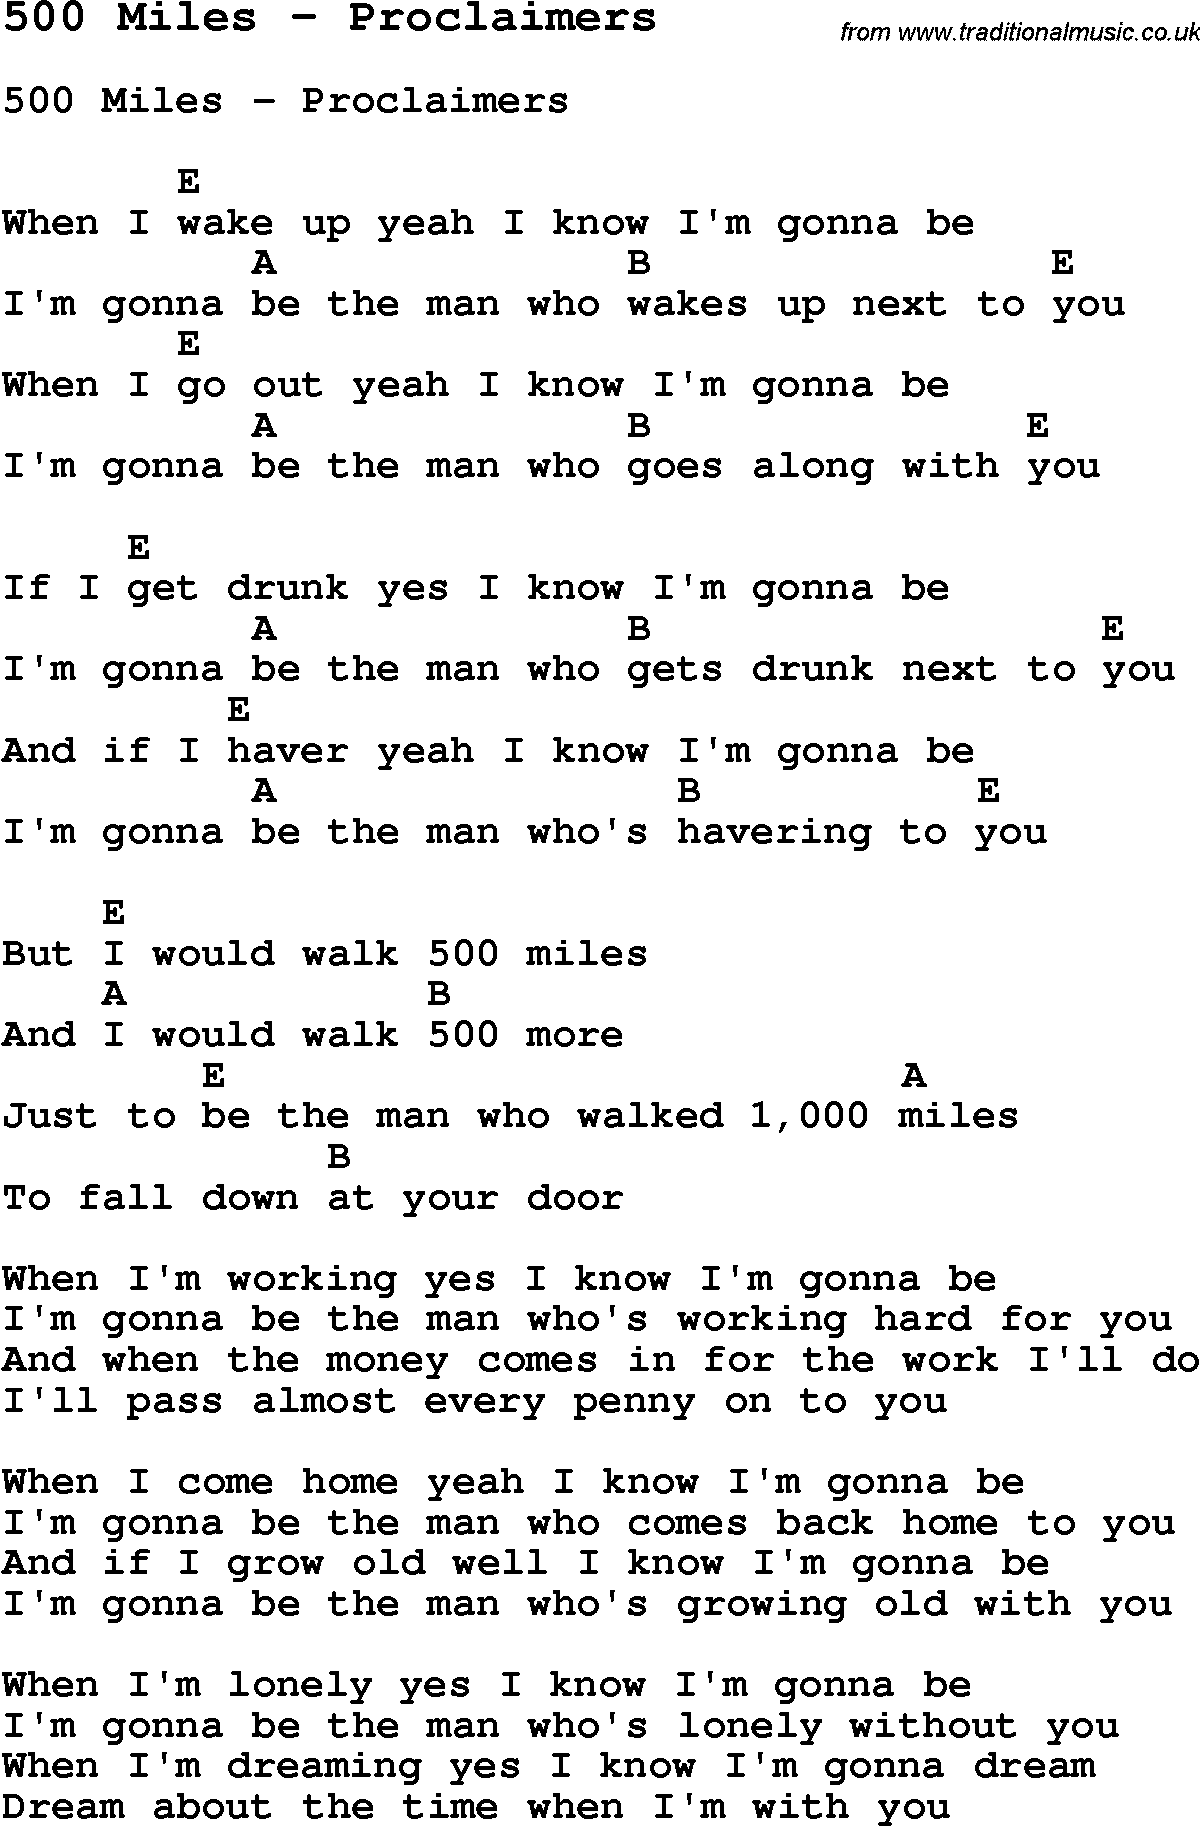 Song 500 miles by proclaimers with lyrics for vocal performance song 500 miles by proclaimers with lyrics for vocal performance and accompaniment chords for ukulele hexwebz Images